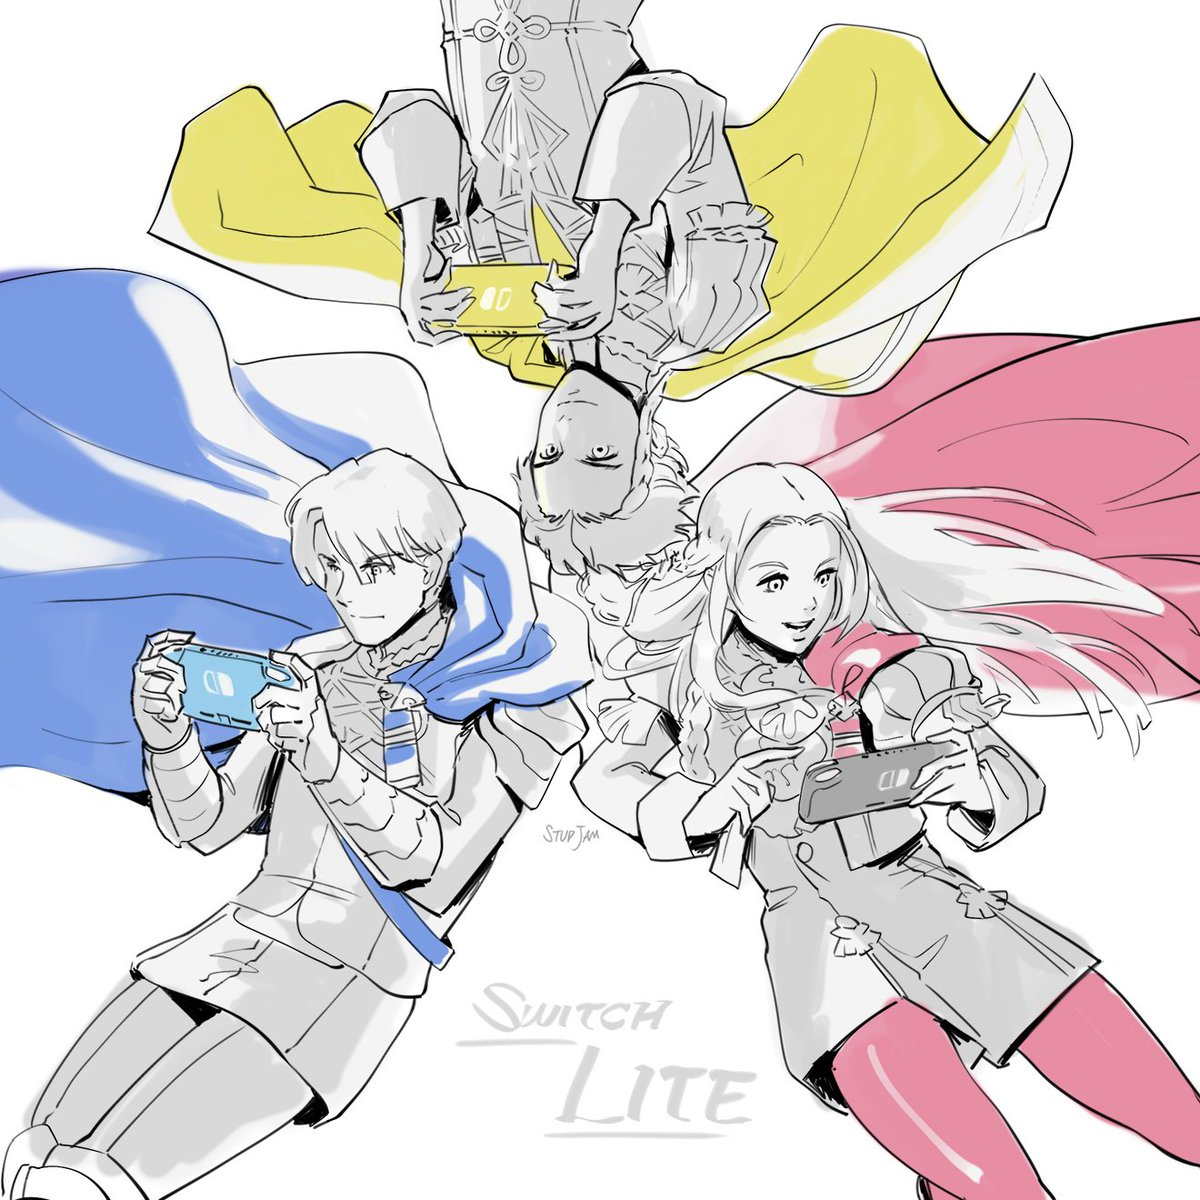 #SwitchLite #FE3H from yt comment:  https://www. youtube.com/watch?v=59yuBF RSZdg&lc=UgzbZObdoqvvoLaQ-Q94AaABAg  … <br>http://pic.twitter.com/7n3wqu9id2